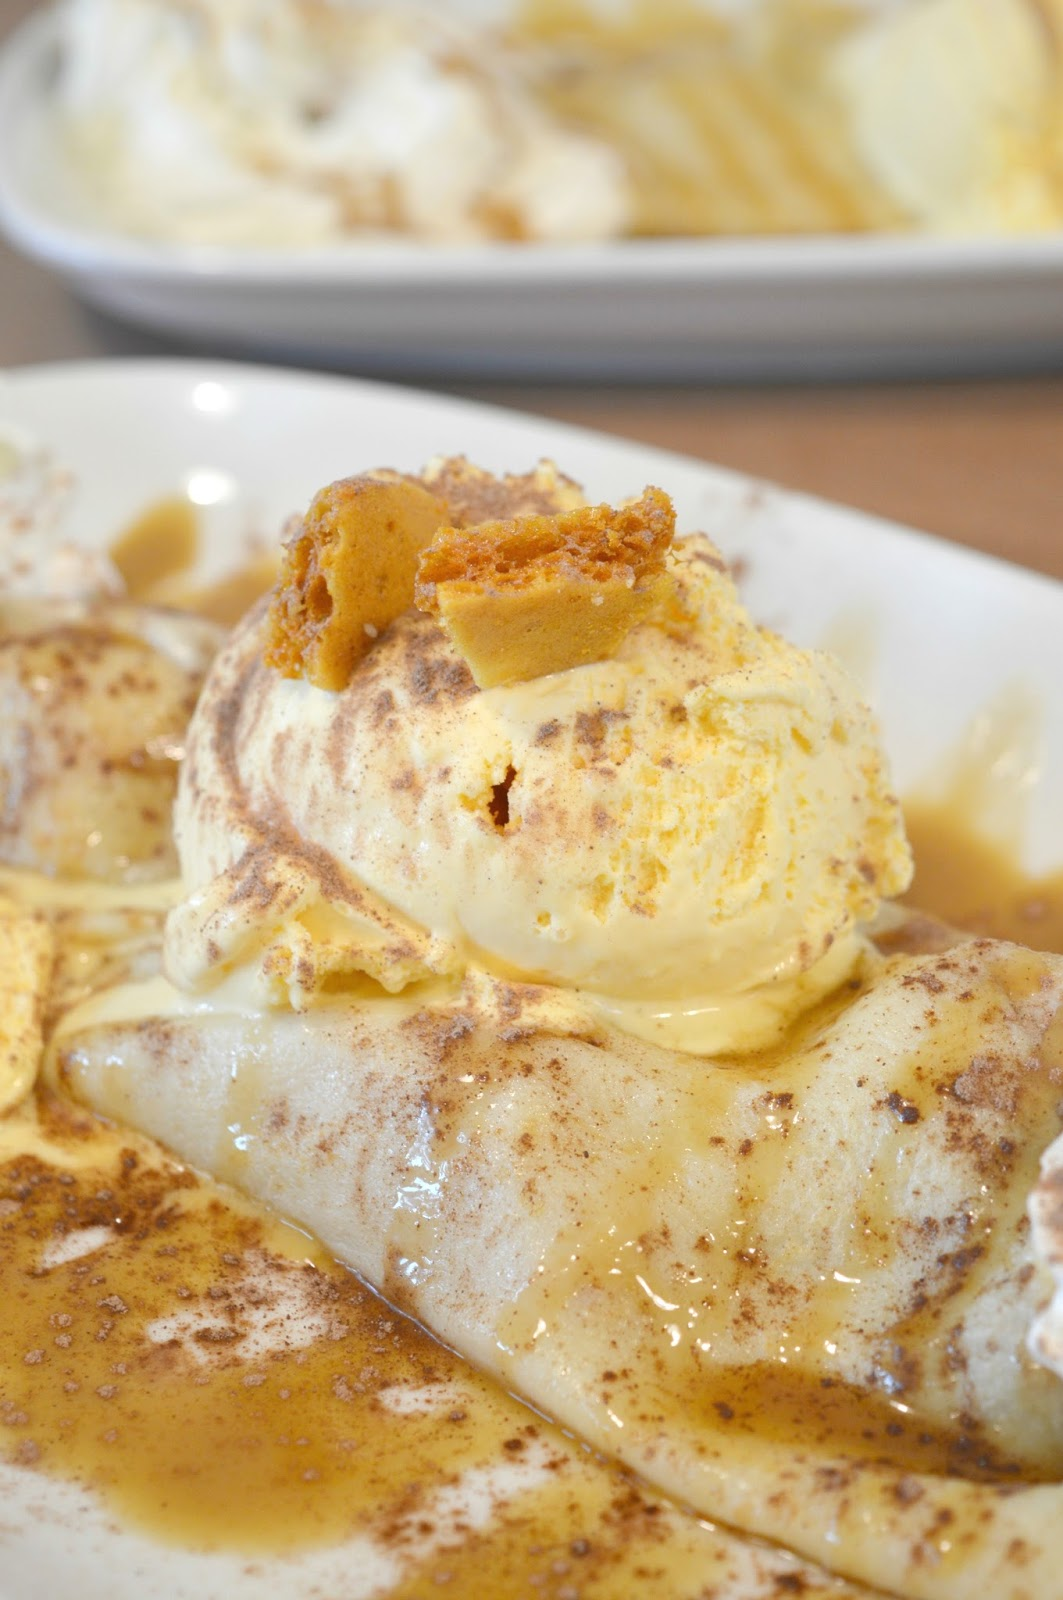 The Pancake Kitchen, Seaham Harbour - Honeycomb Surprise